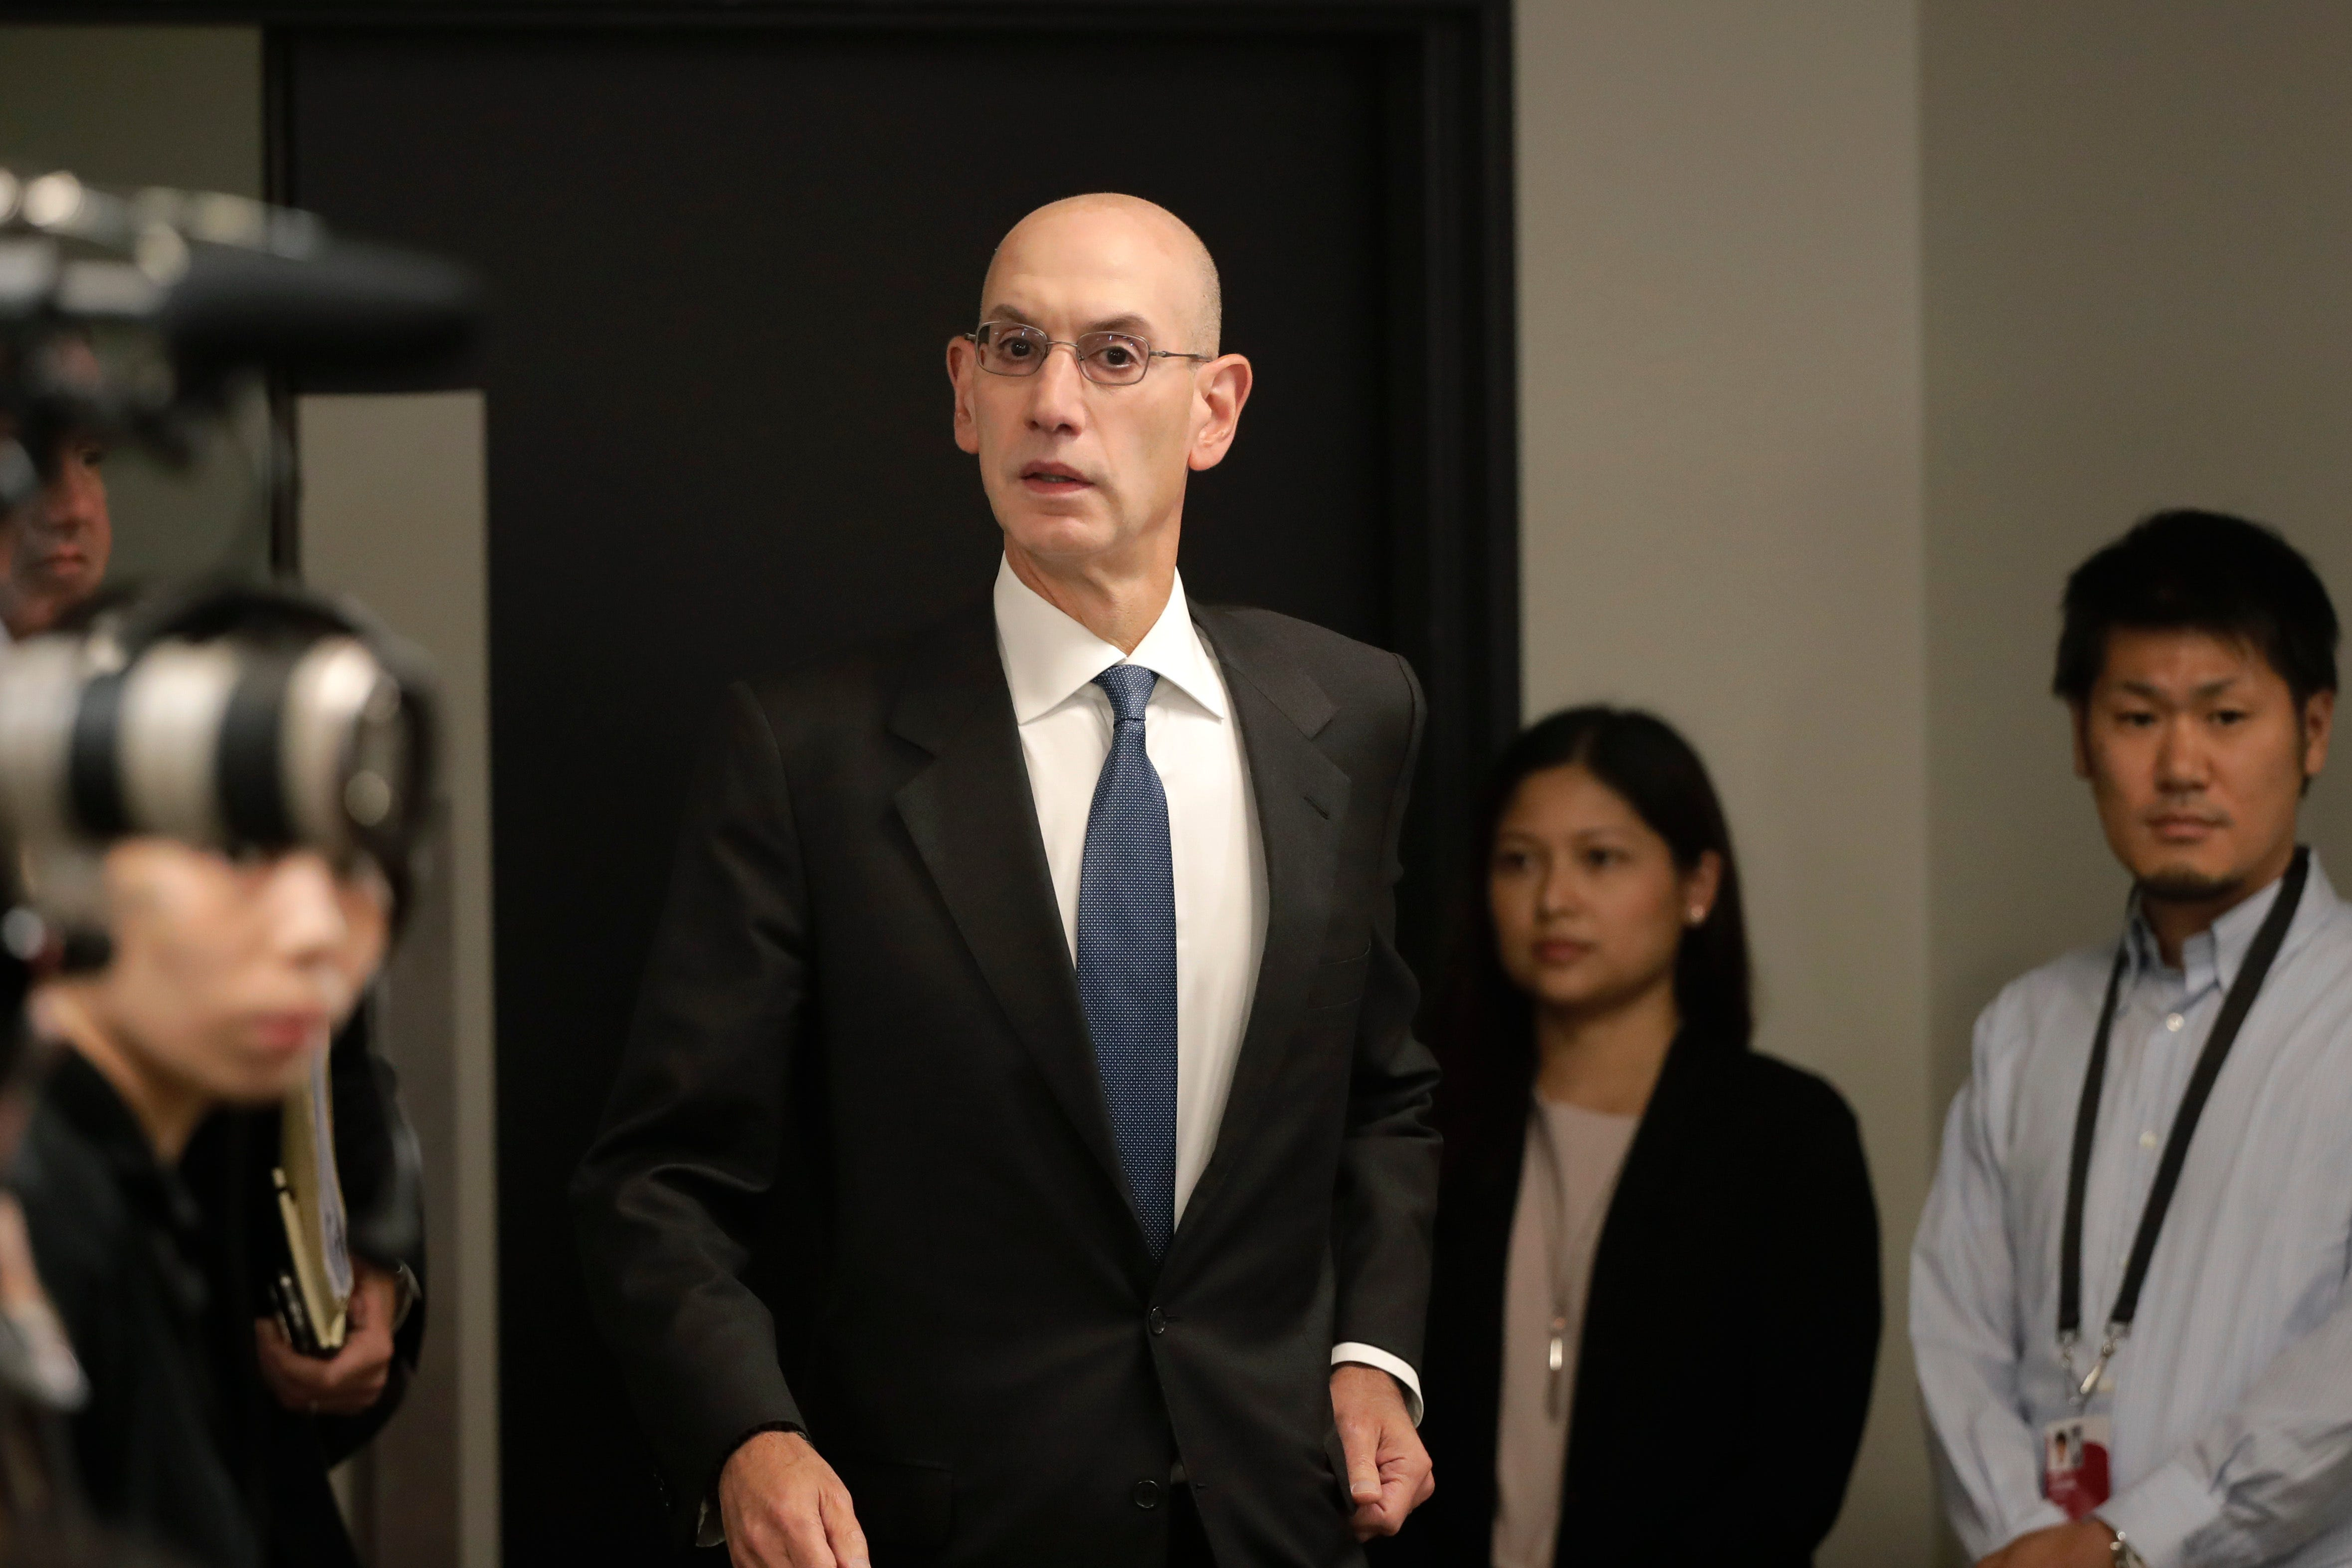 Opinion: NBA sold its soul to China over cash —all it cost was its moral high ground